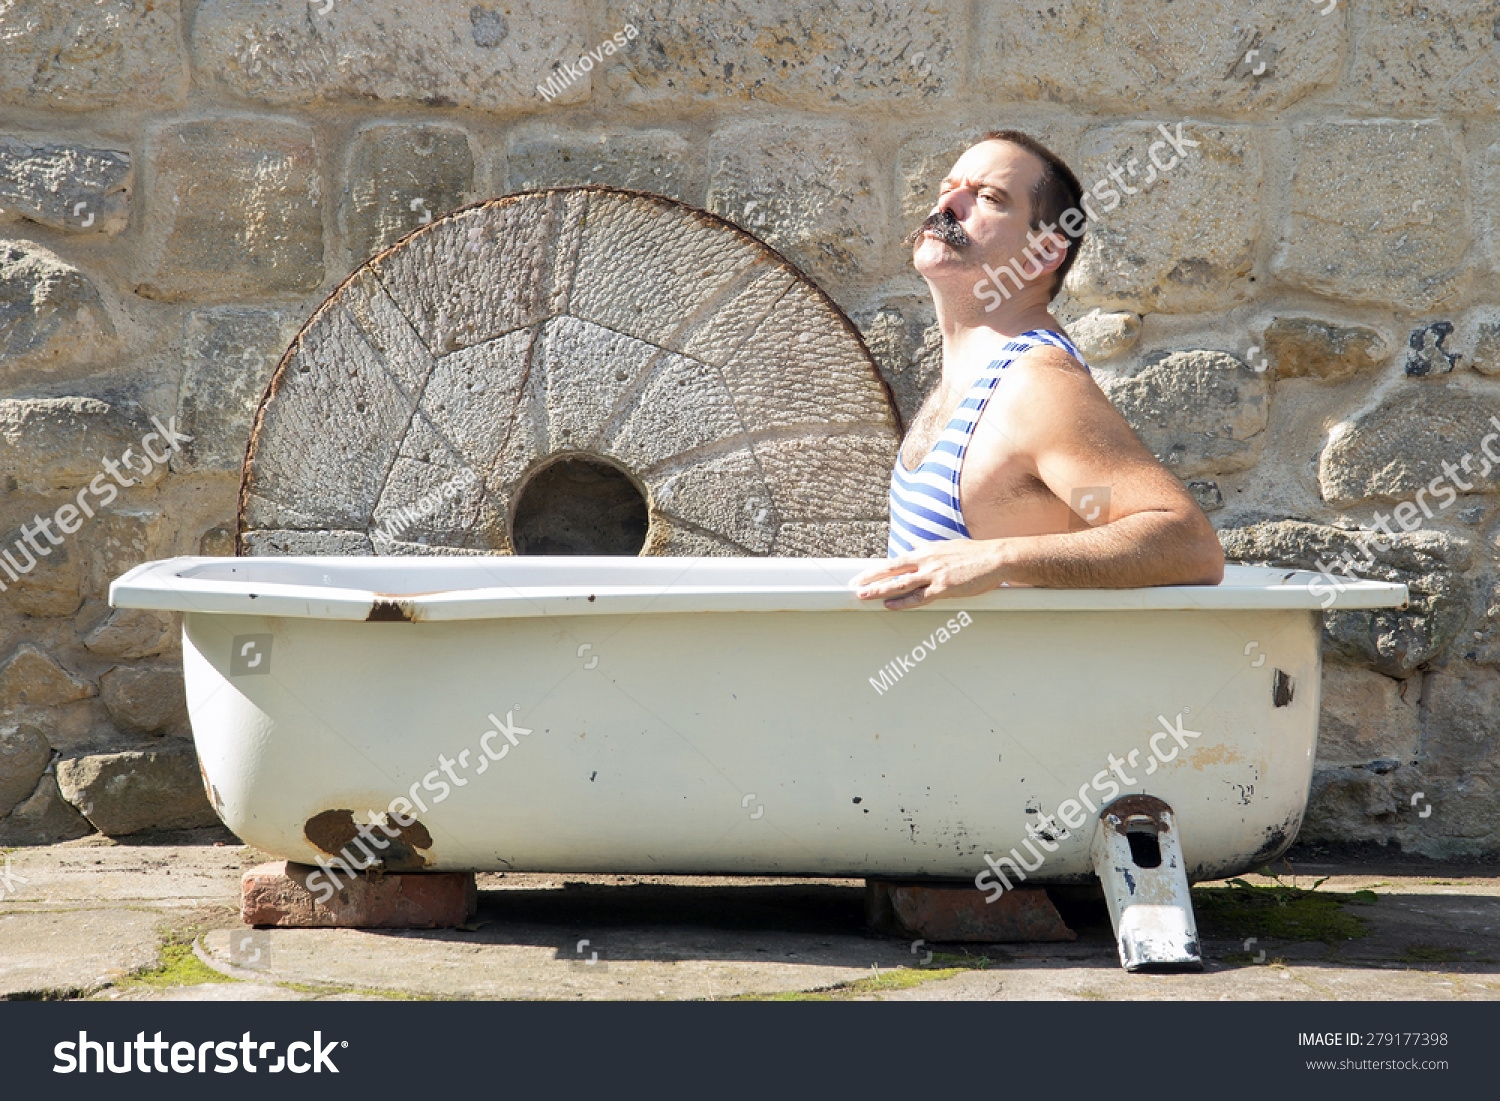 Man Retro Swimsuit Resting Old Outdoor Stock Photo (Edit Now ...